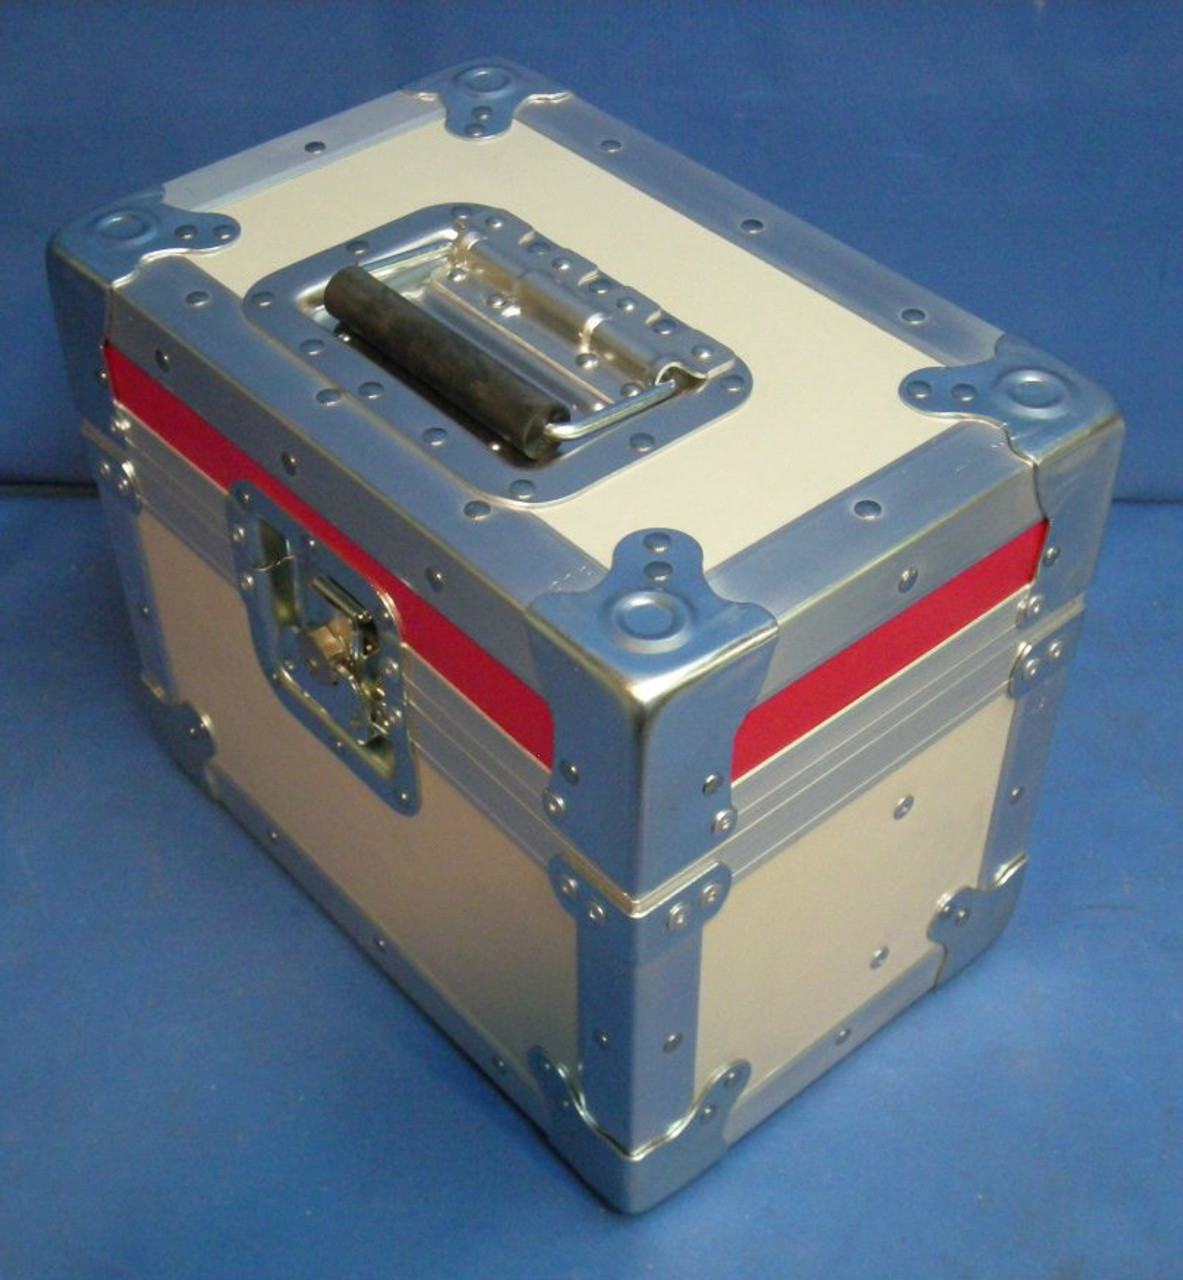 Arri LMB-5 Matte Box Custom ATA Shipping Case - Exterior View